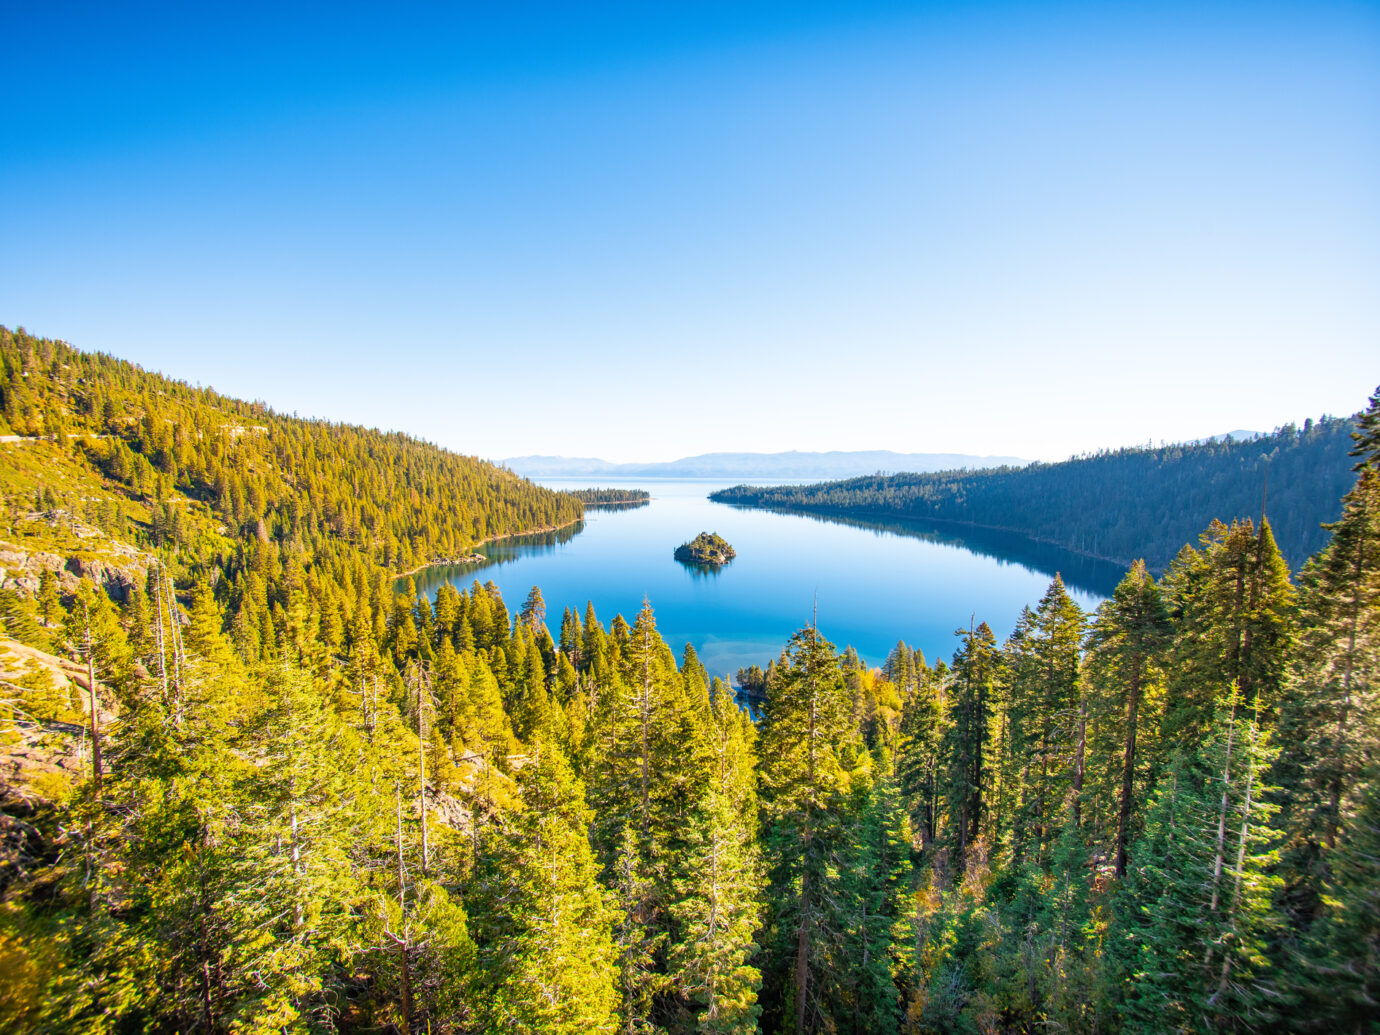 View of South Lake Tahoe from the forest